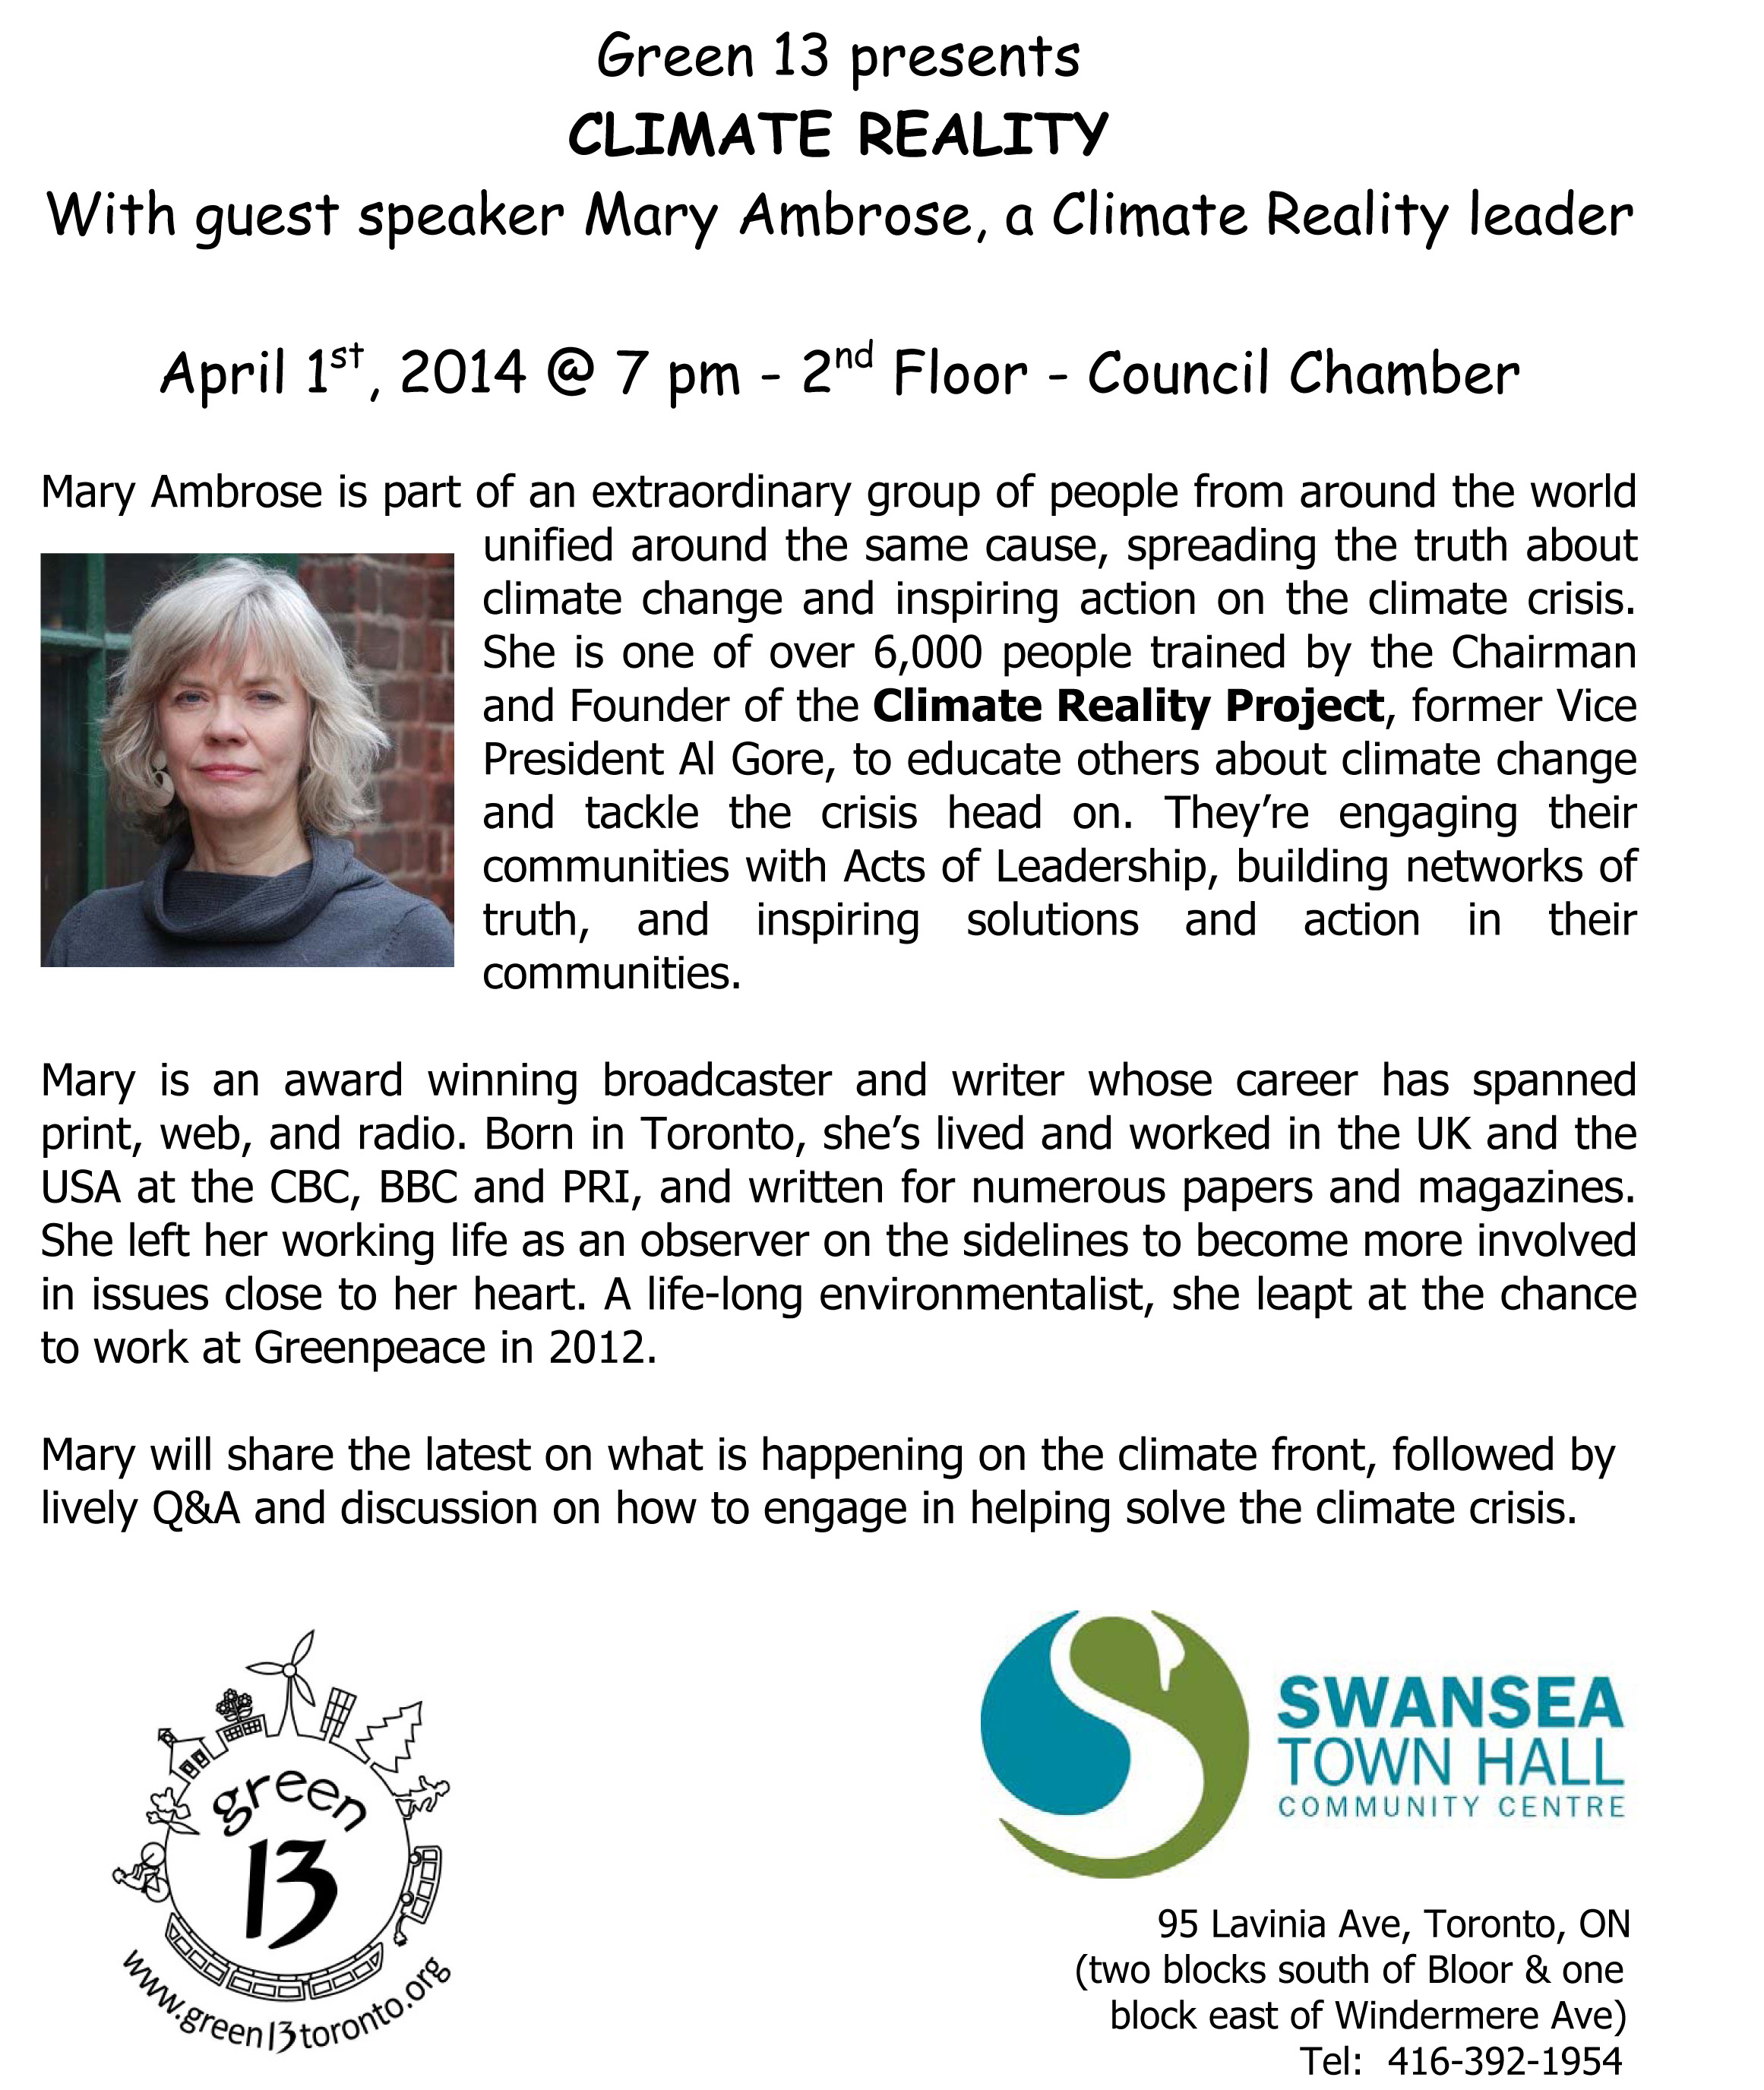 Green 13 & Swansea Town Hall presents